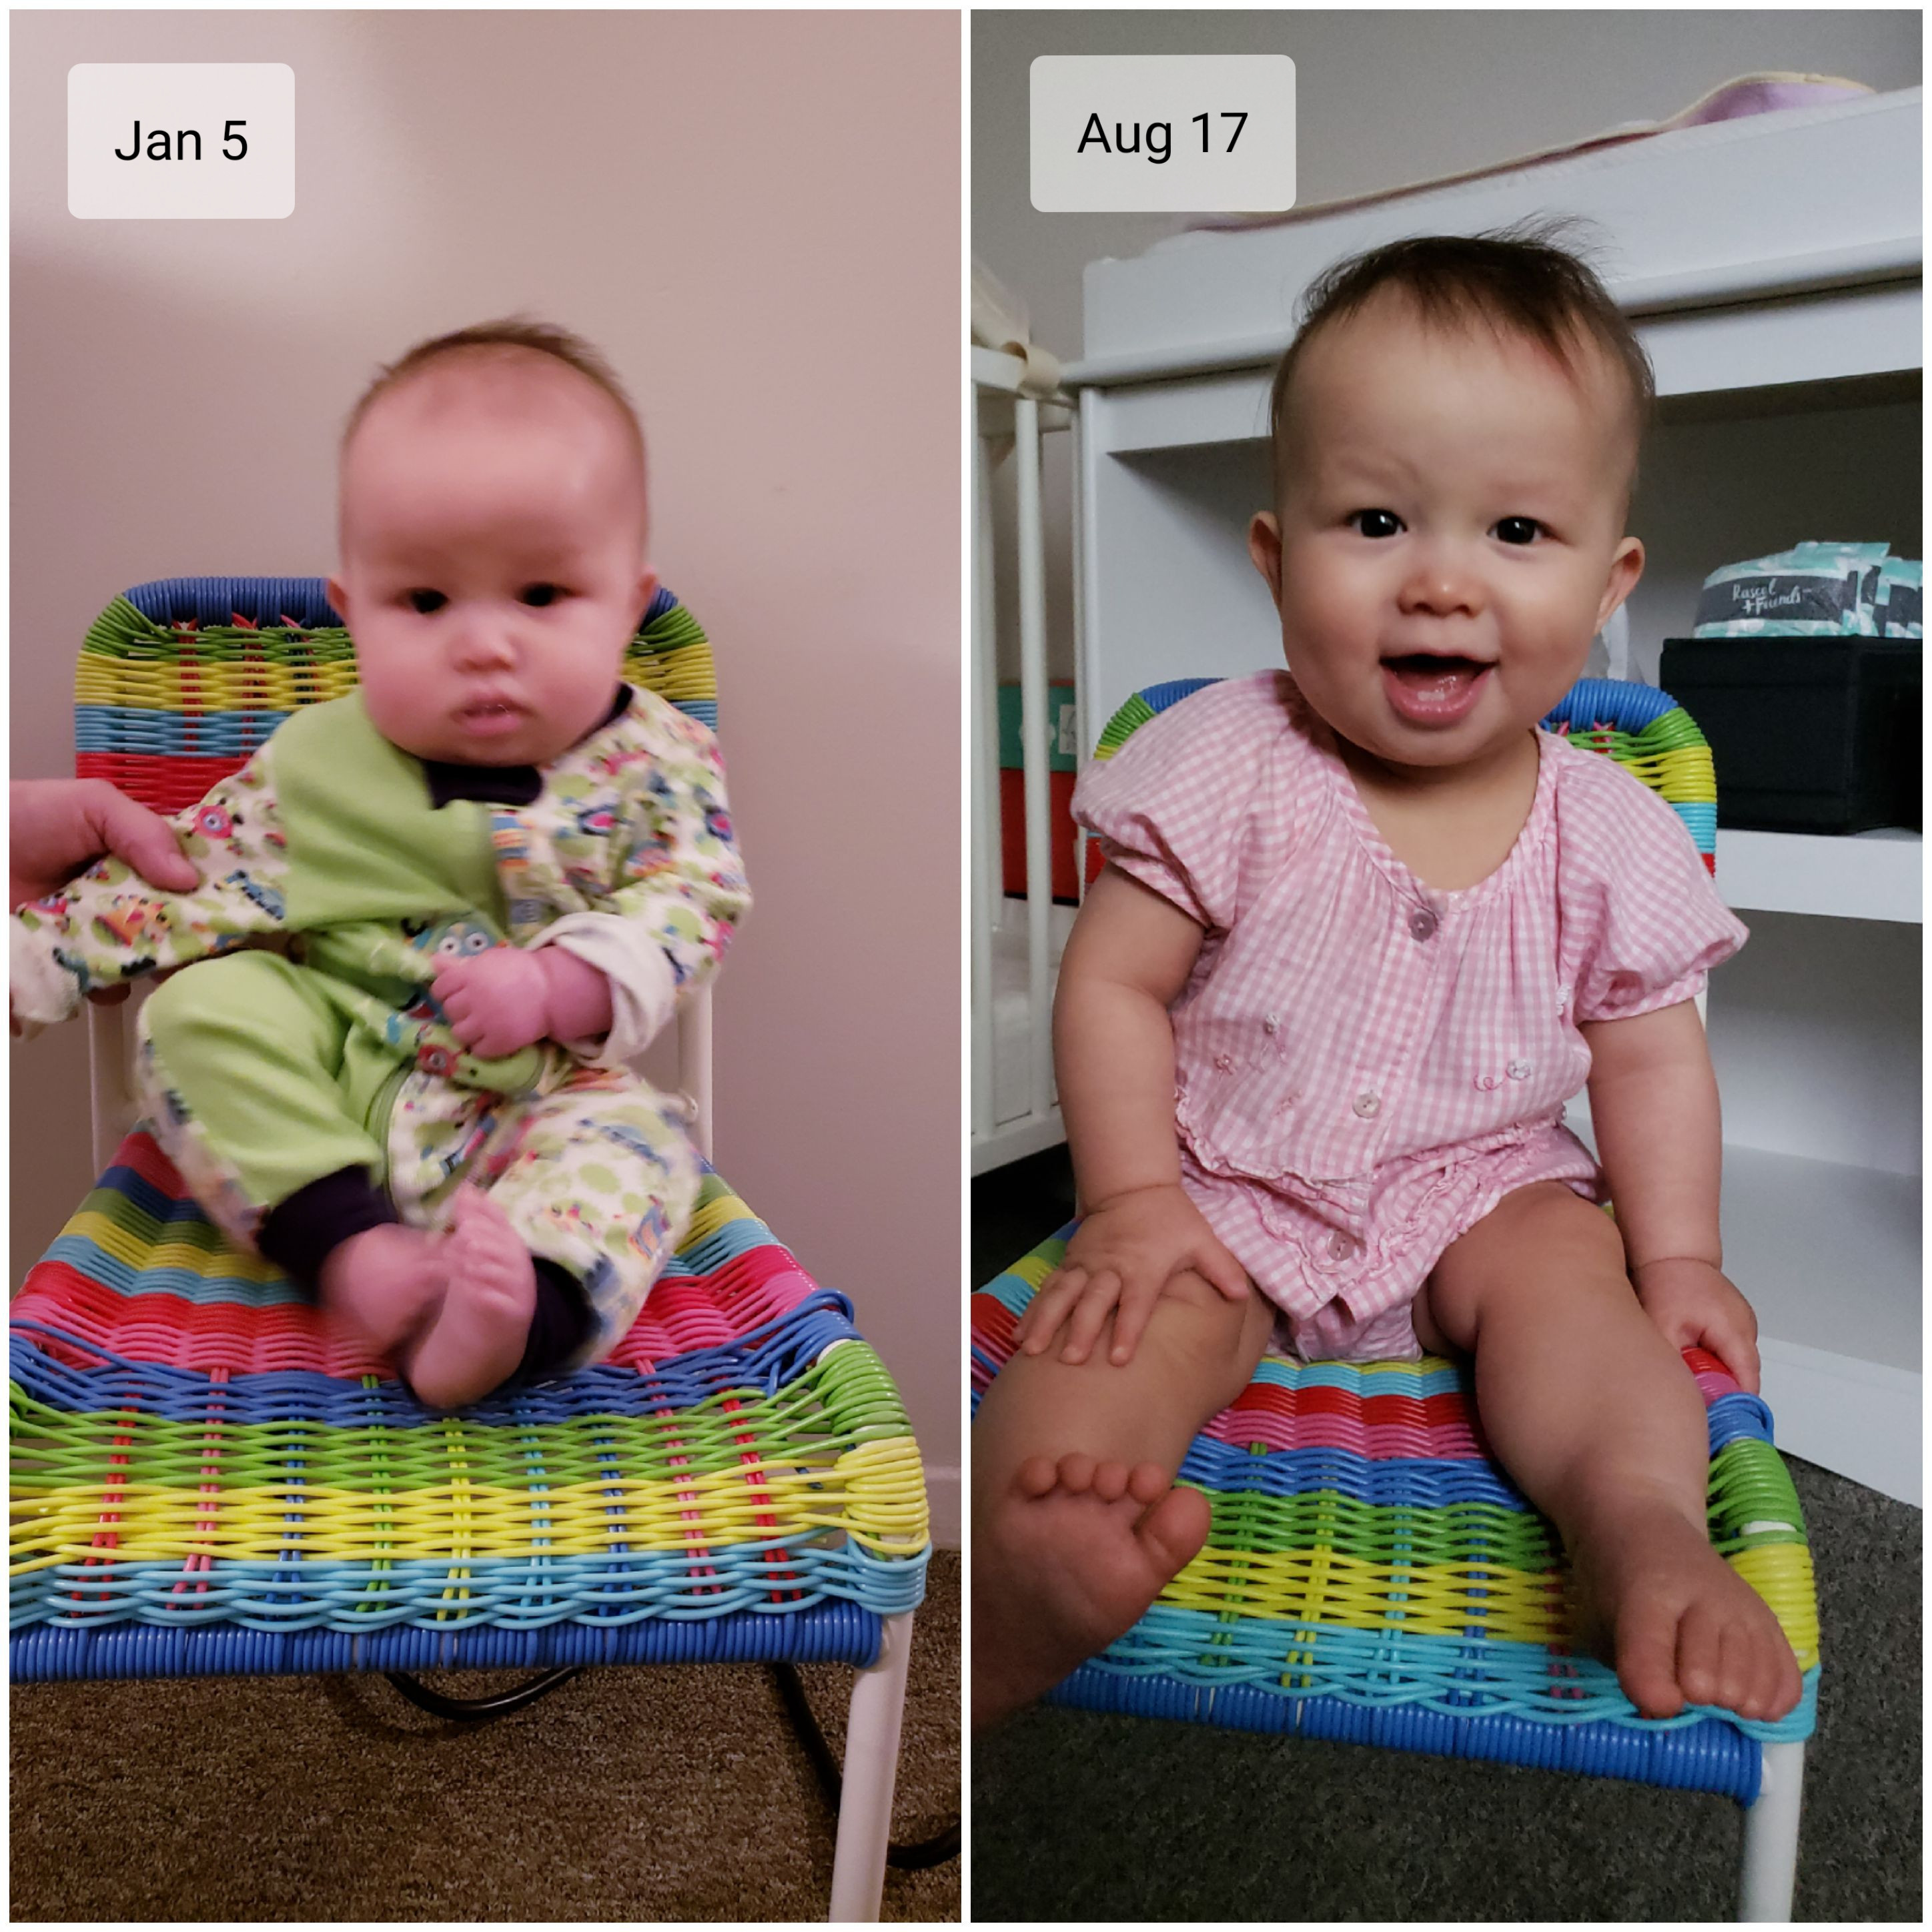 Photos of baby Baobao on her own chair. At left, January 5, 2020; at right, August 17, 2020.